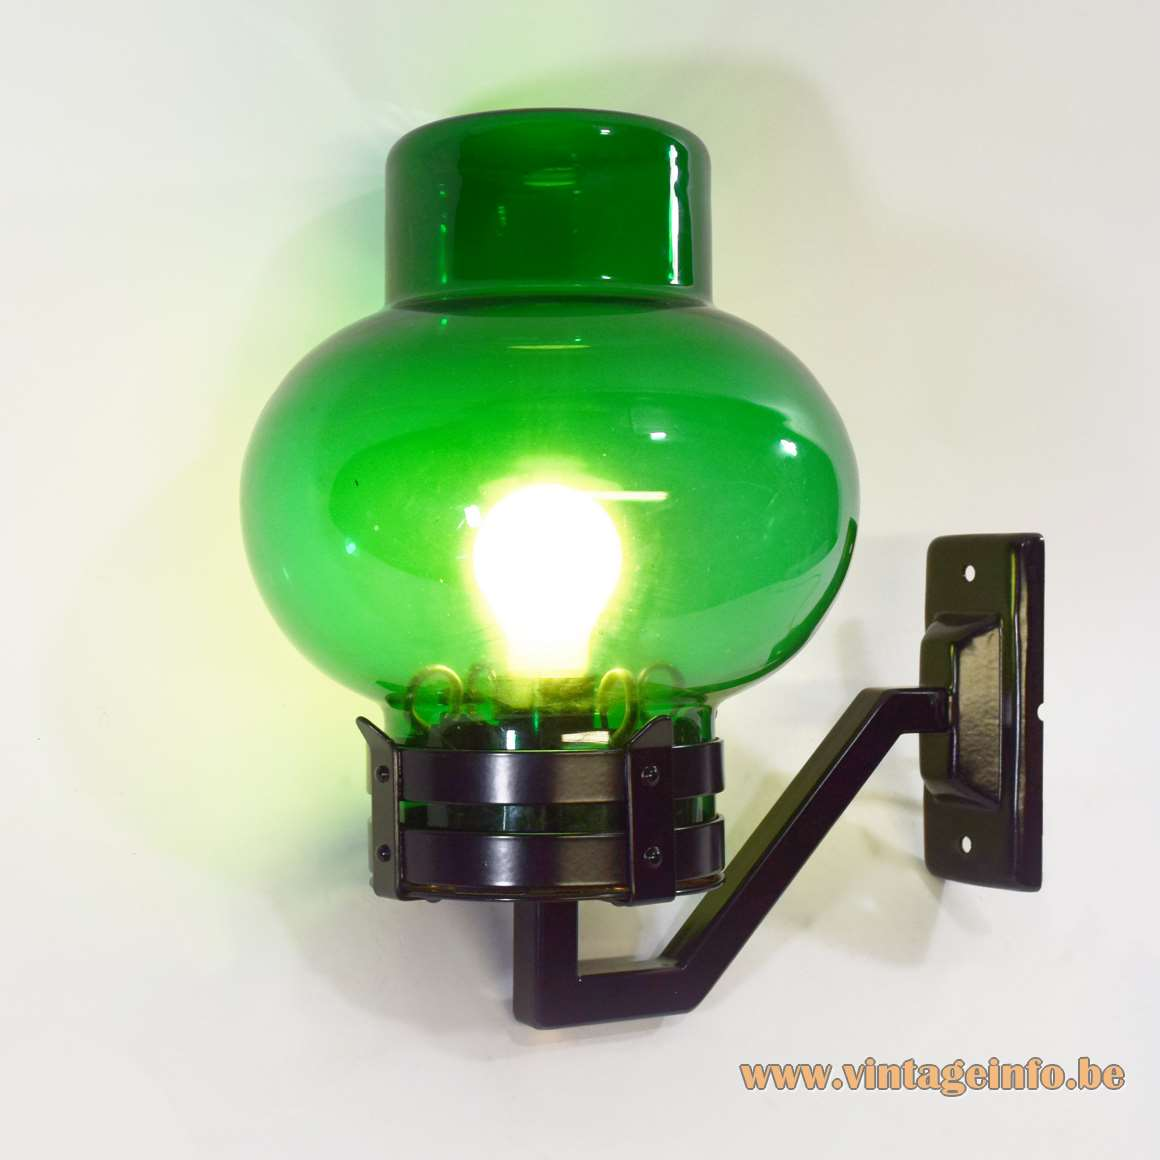 1960s Philips outdoor wall lamp garden light green glass black painted metal bollard style 1970s MCM